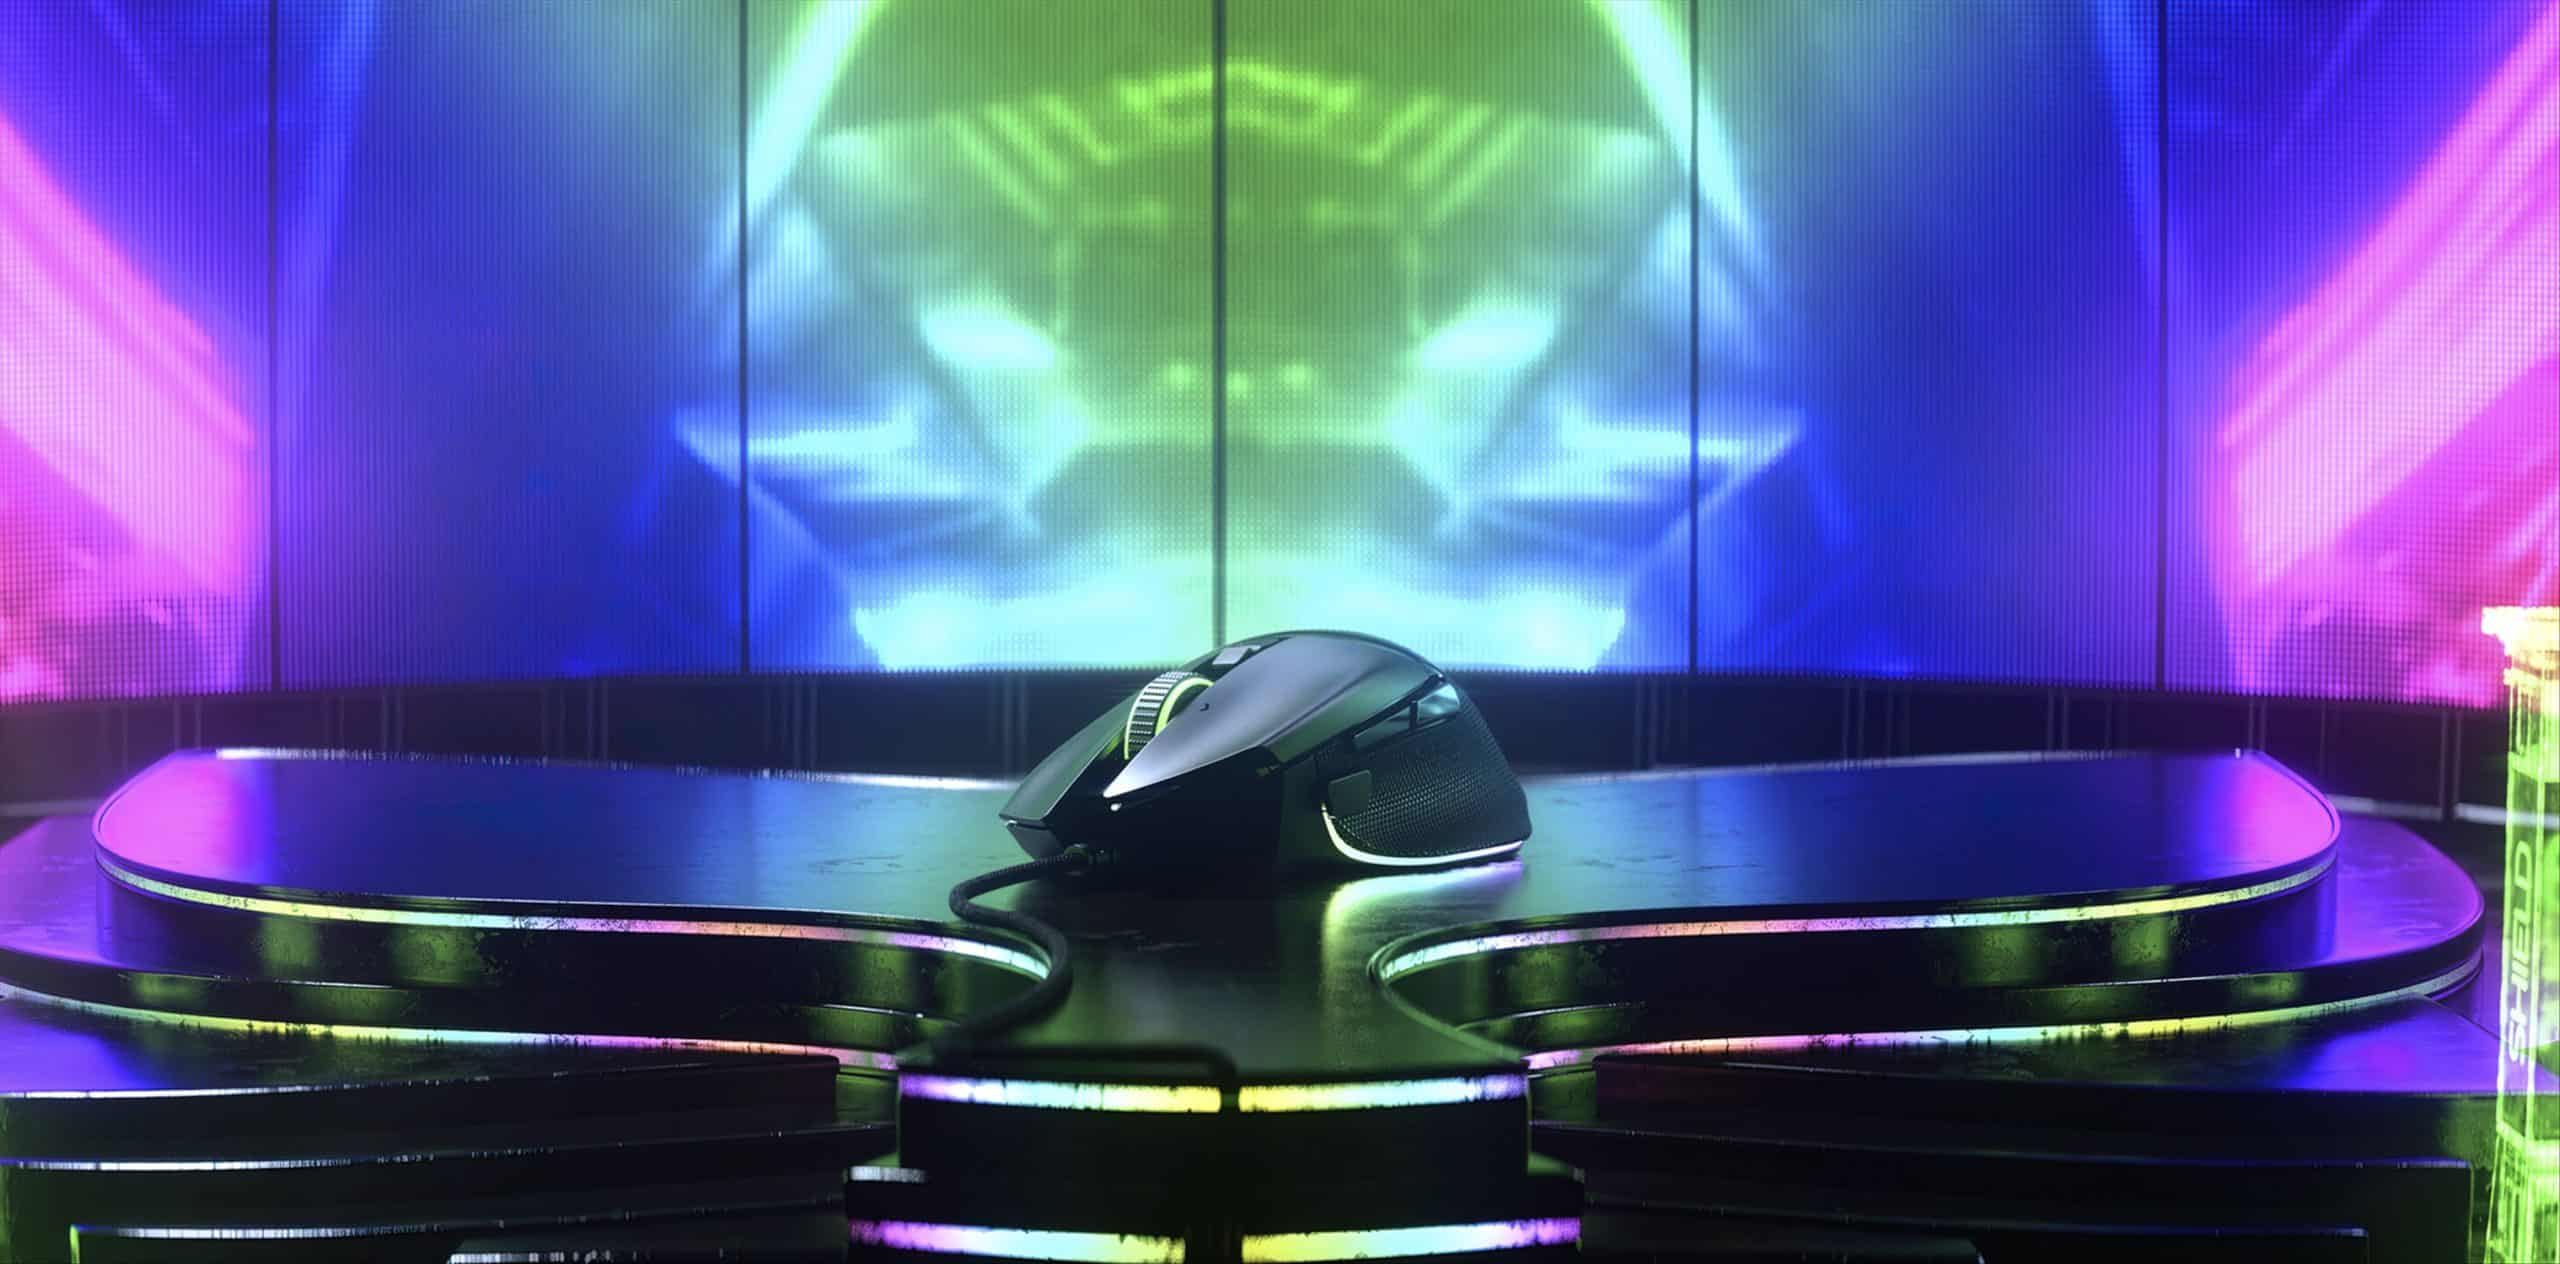 The new Razer Basilisk V3 gaming mouse comes with two things you'll like